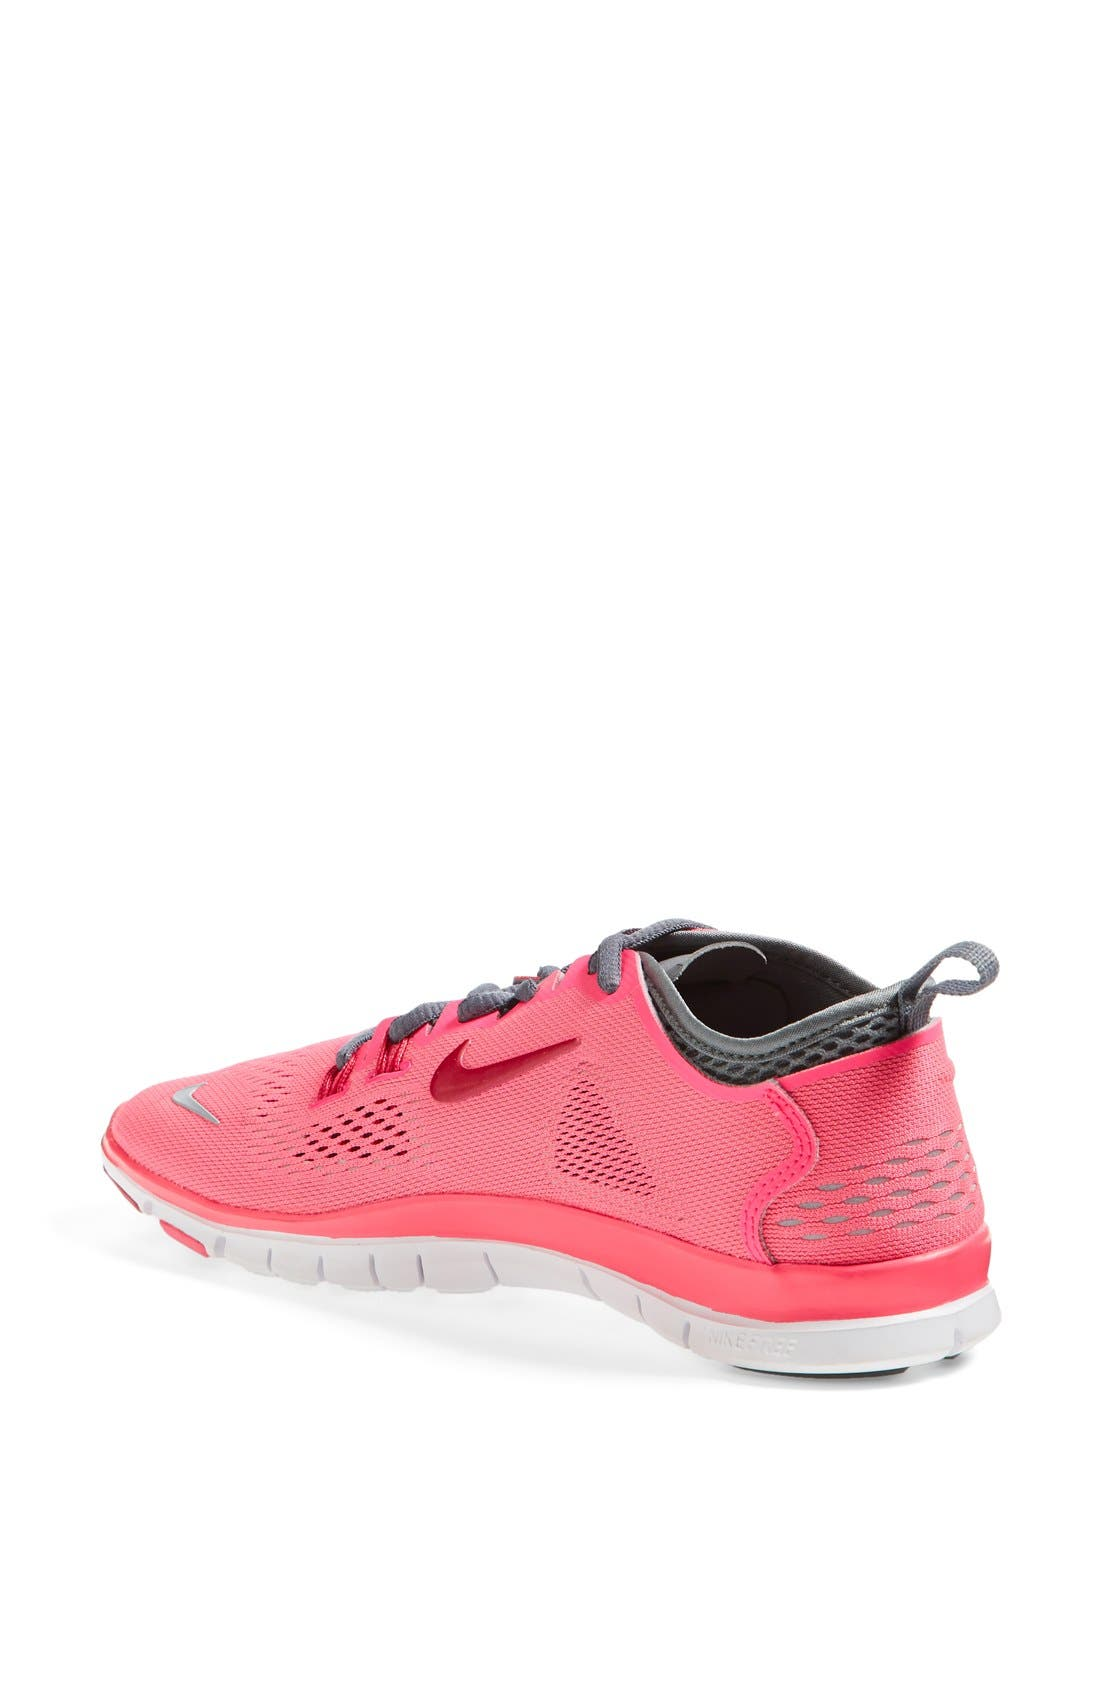 ,                             'Free 5.0 TR Fit 4' Training Shoe,                             Alternate thumbnail 75, color,                             655